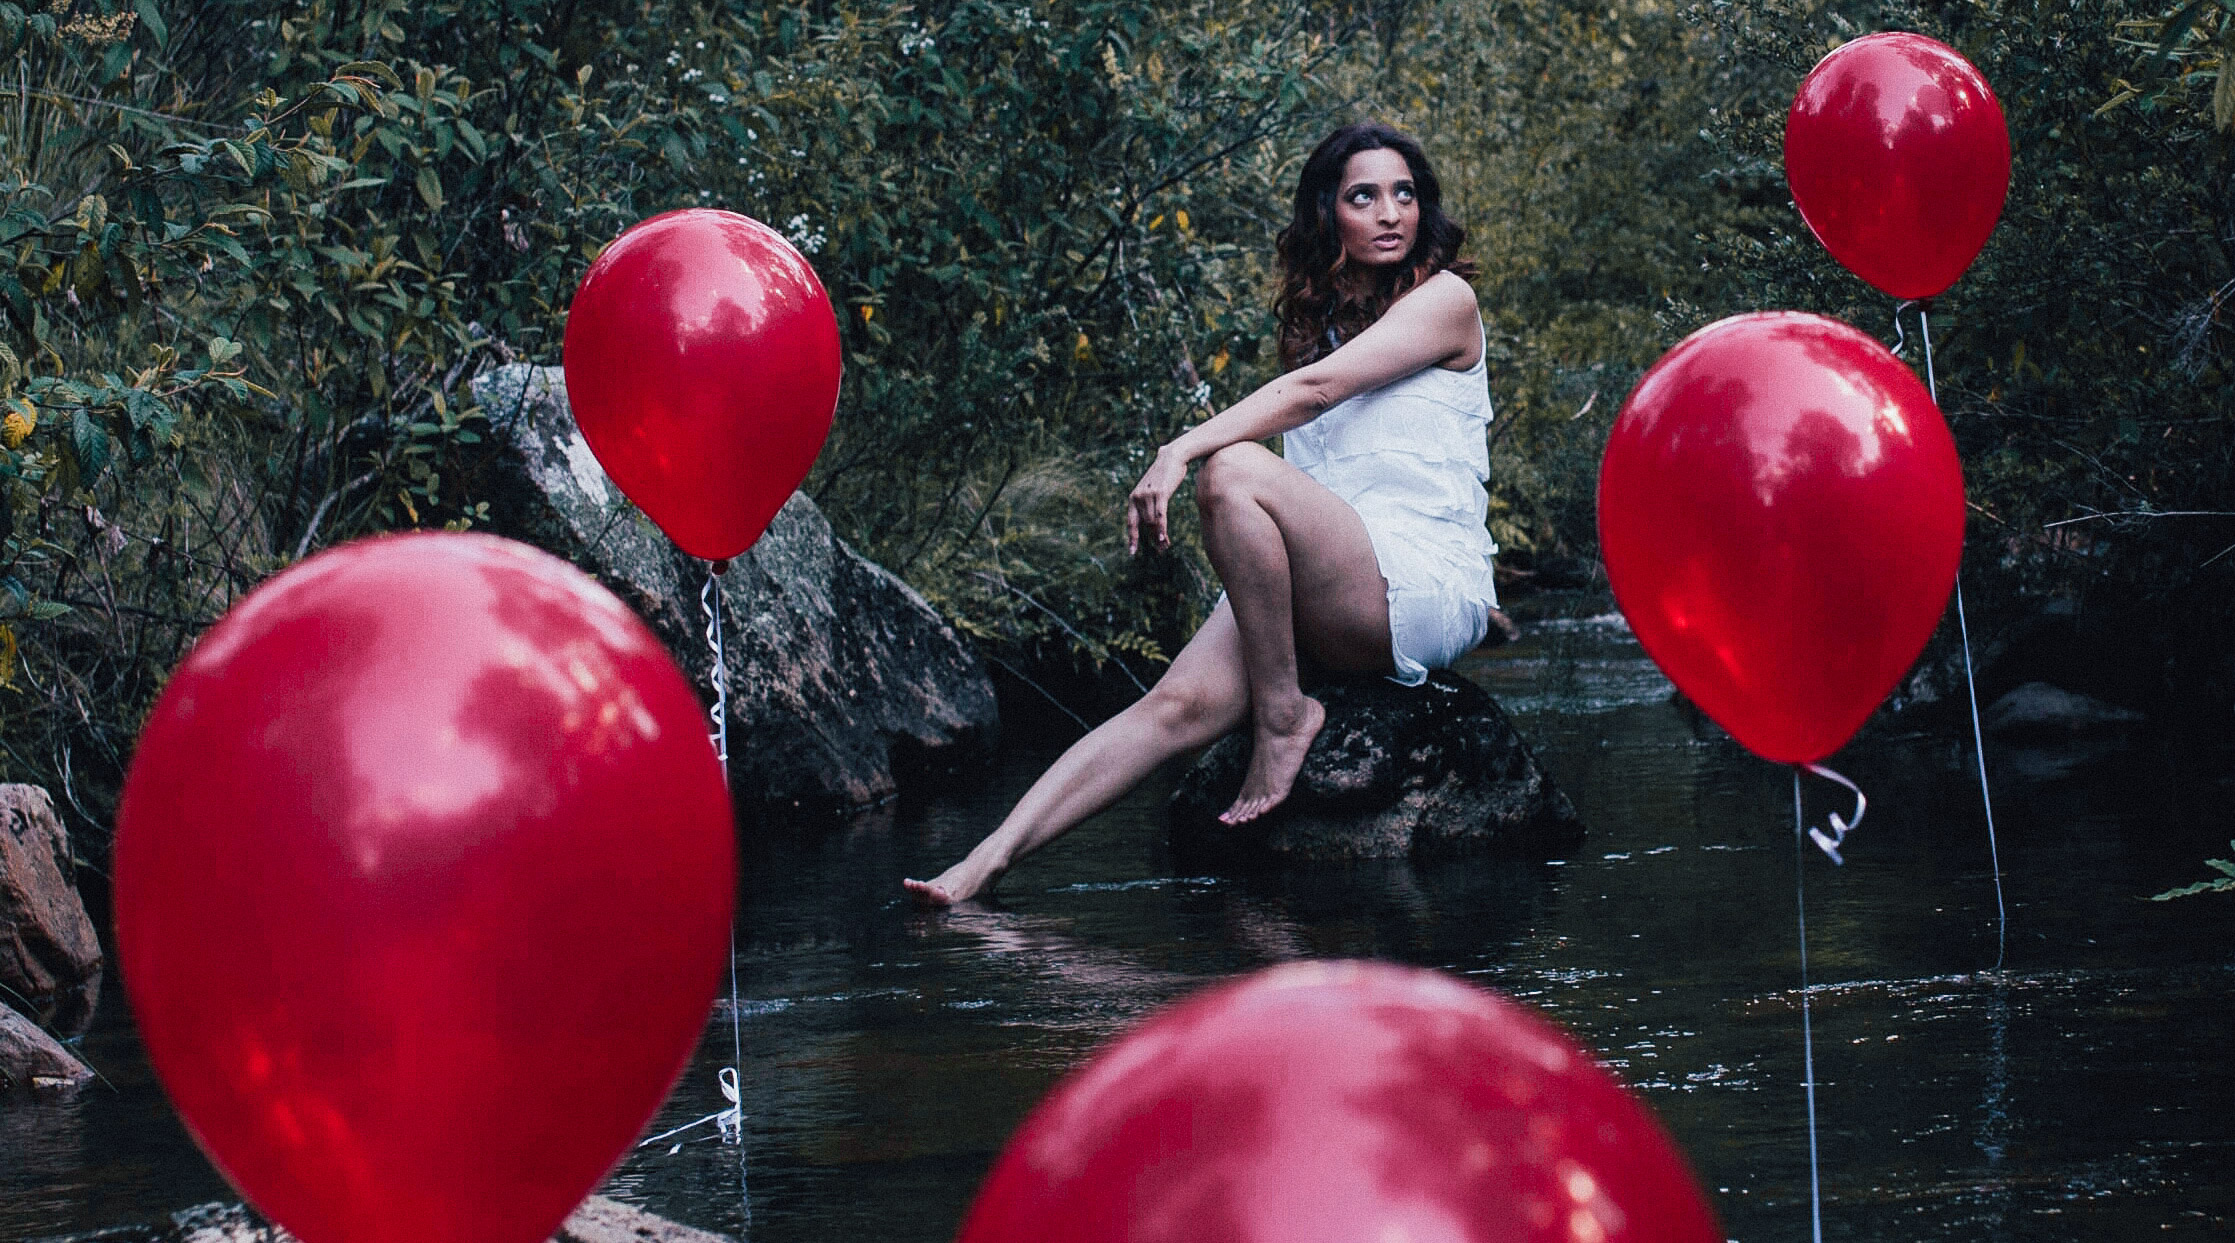 Girl in white dress sitting on a stone in a river with red balloons in the river around her